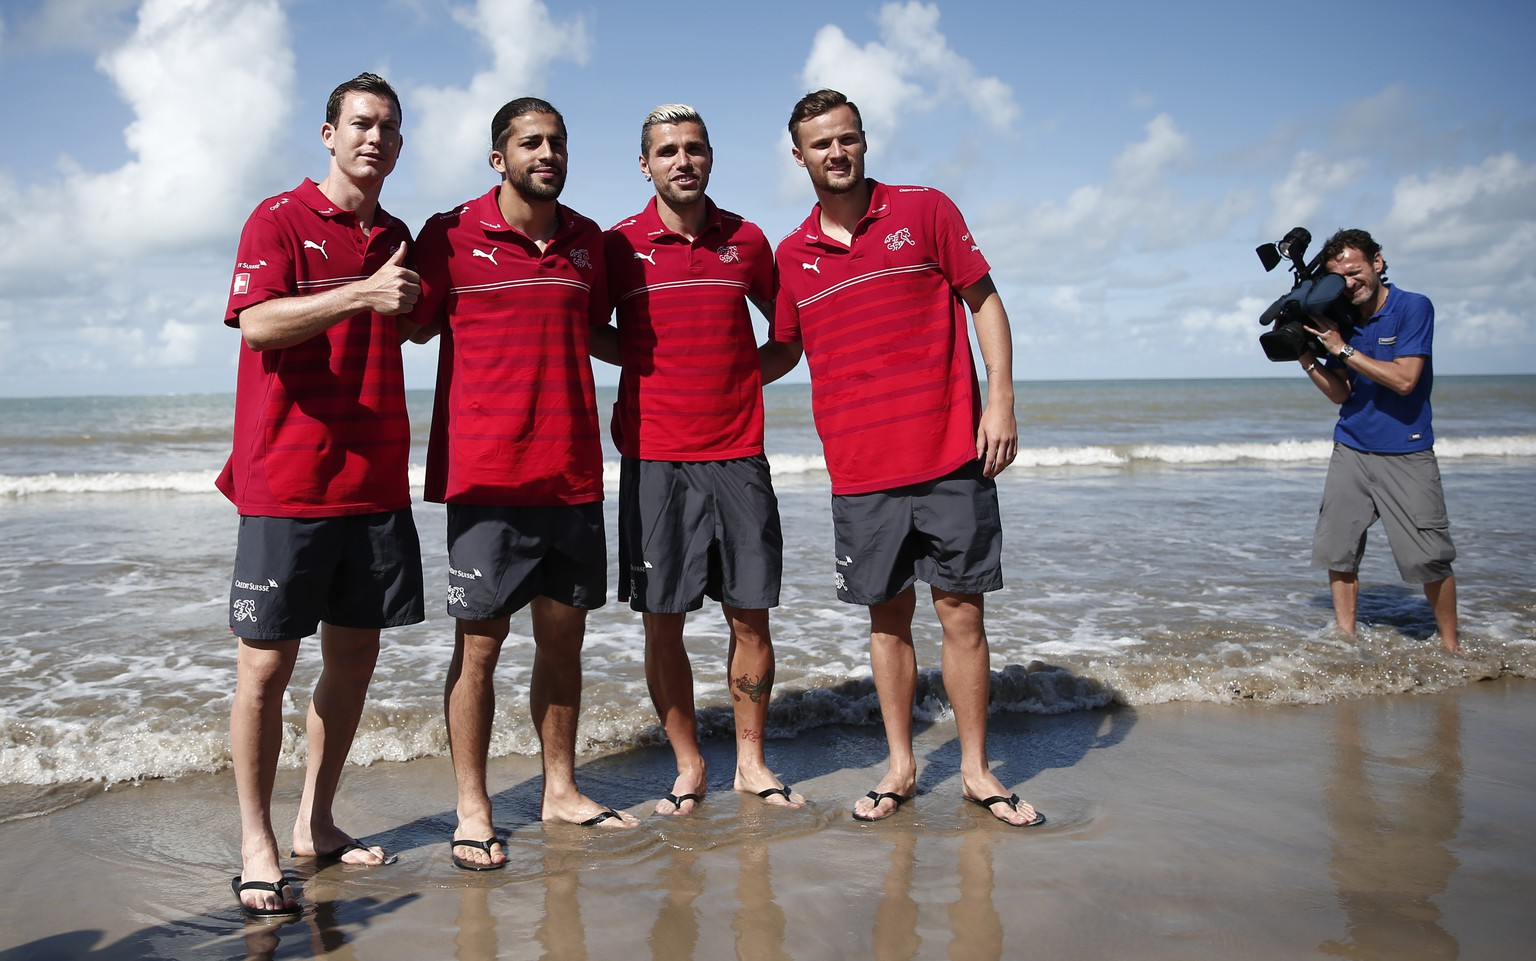 From left: Switzerland's Stephan Lichtsteiner, Ricardo Rodriguez, Valon Behrami and Haris Seferovic pose on the beach after a media conference of the Swiss national soccer team in Porto Seguro, Brazil, Tuesday, June 17, 2014. (KEYSTONE/Peter Klaunzer)